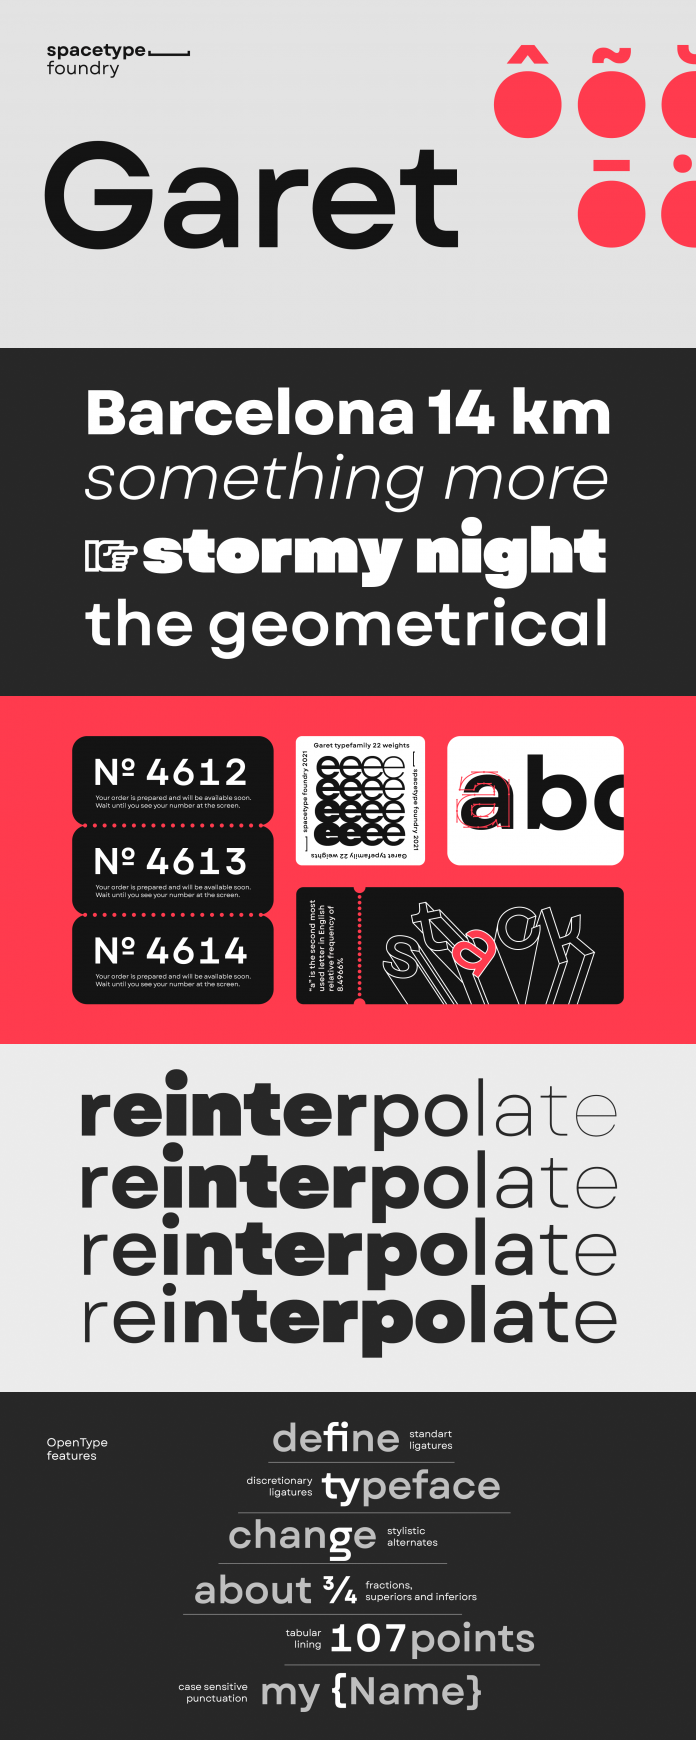 Garet font family from Spacetype.